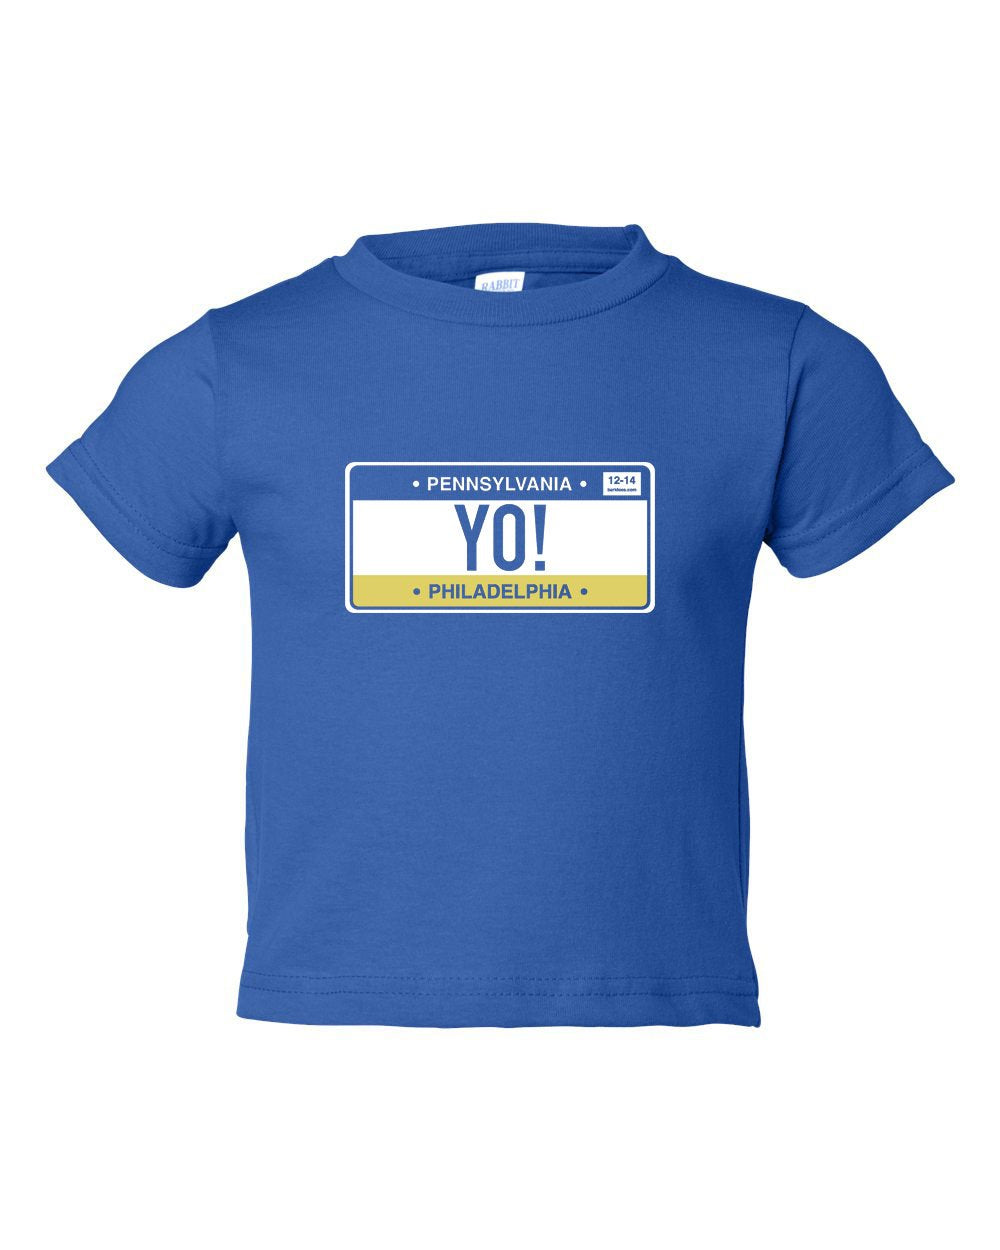 Yo Philly! TODDLER T-Shirt